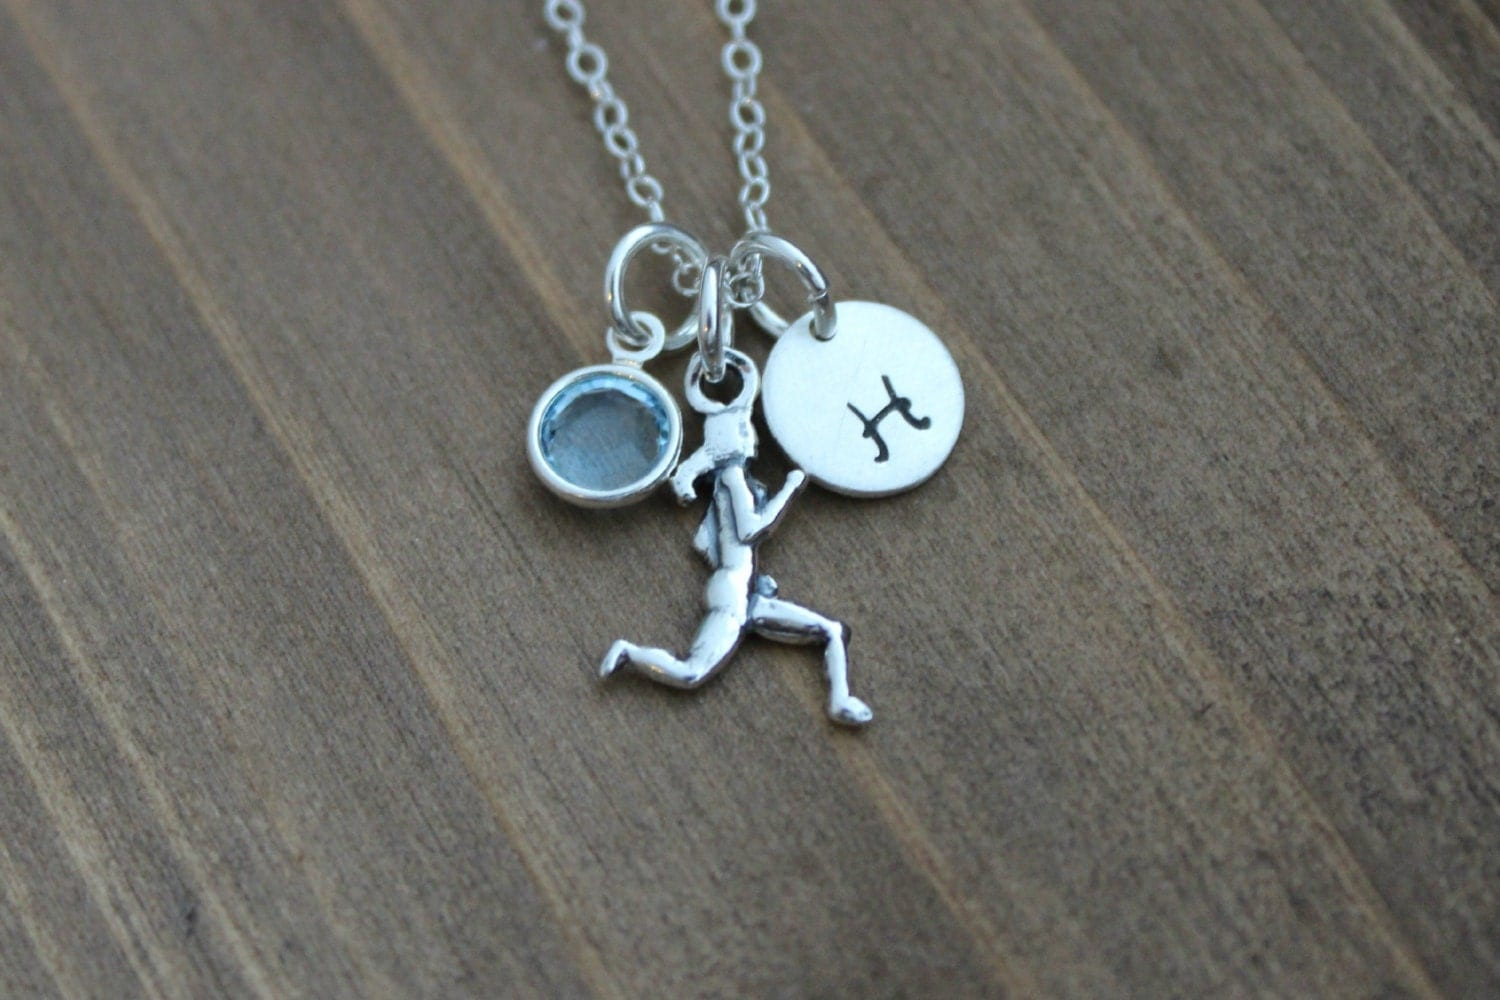 runner girl sterling silver charm necklace by beachcovejewelry